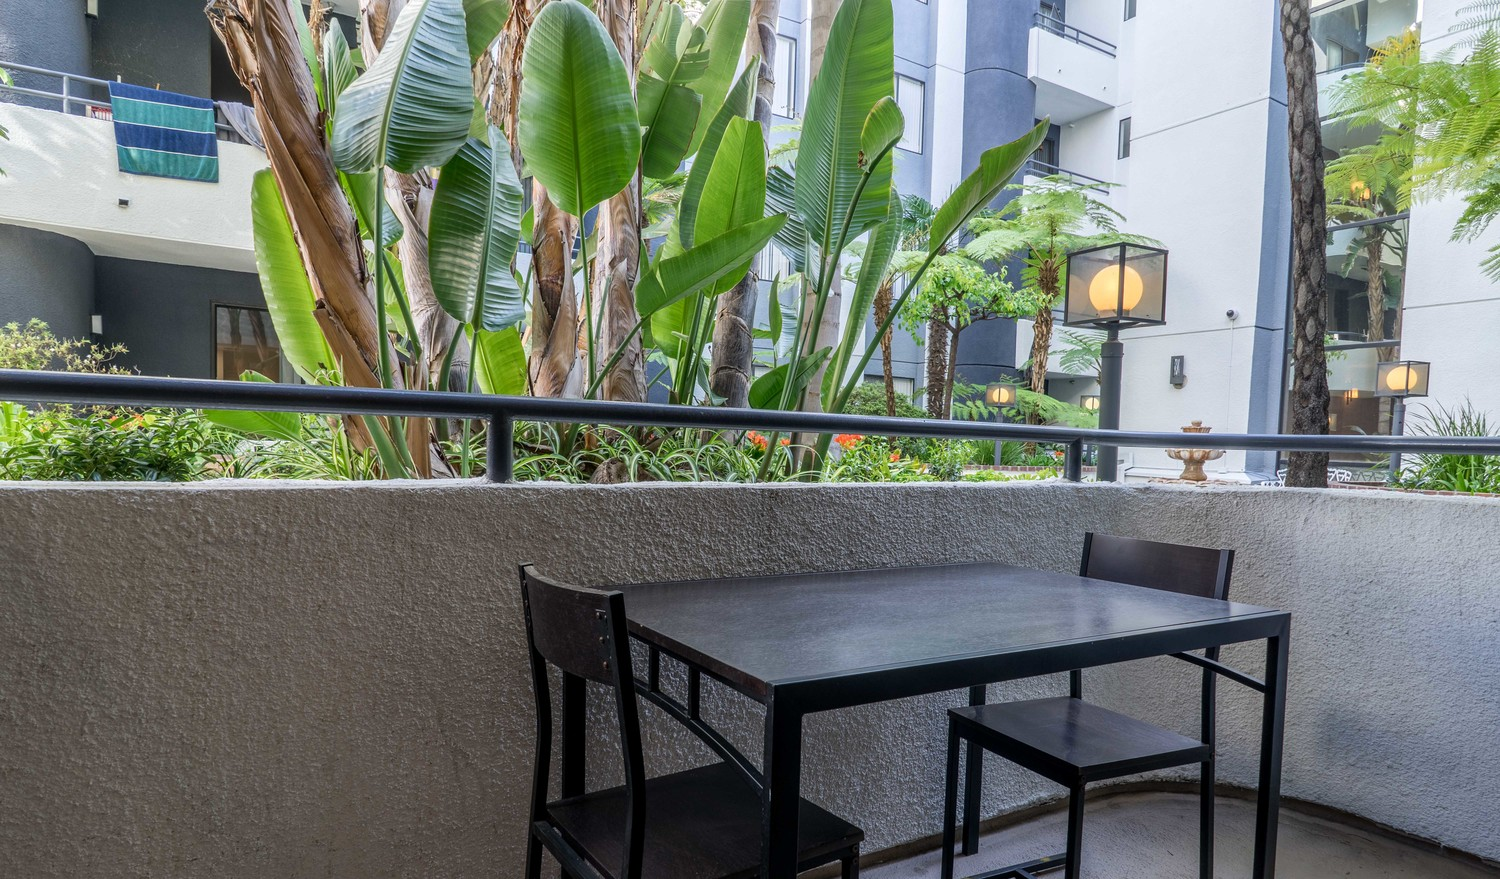 2 bd 2 bath private room for rent at Midvale Court